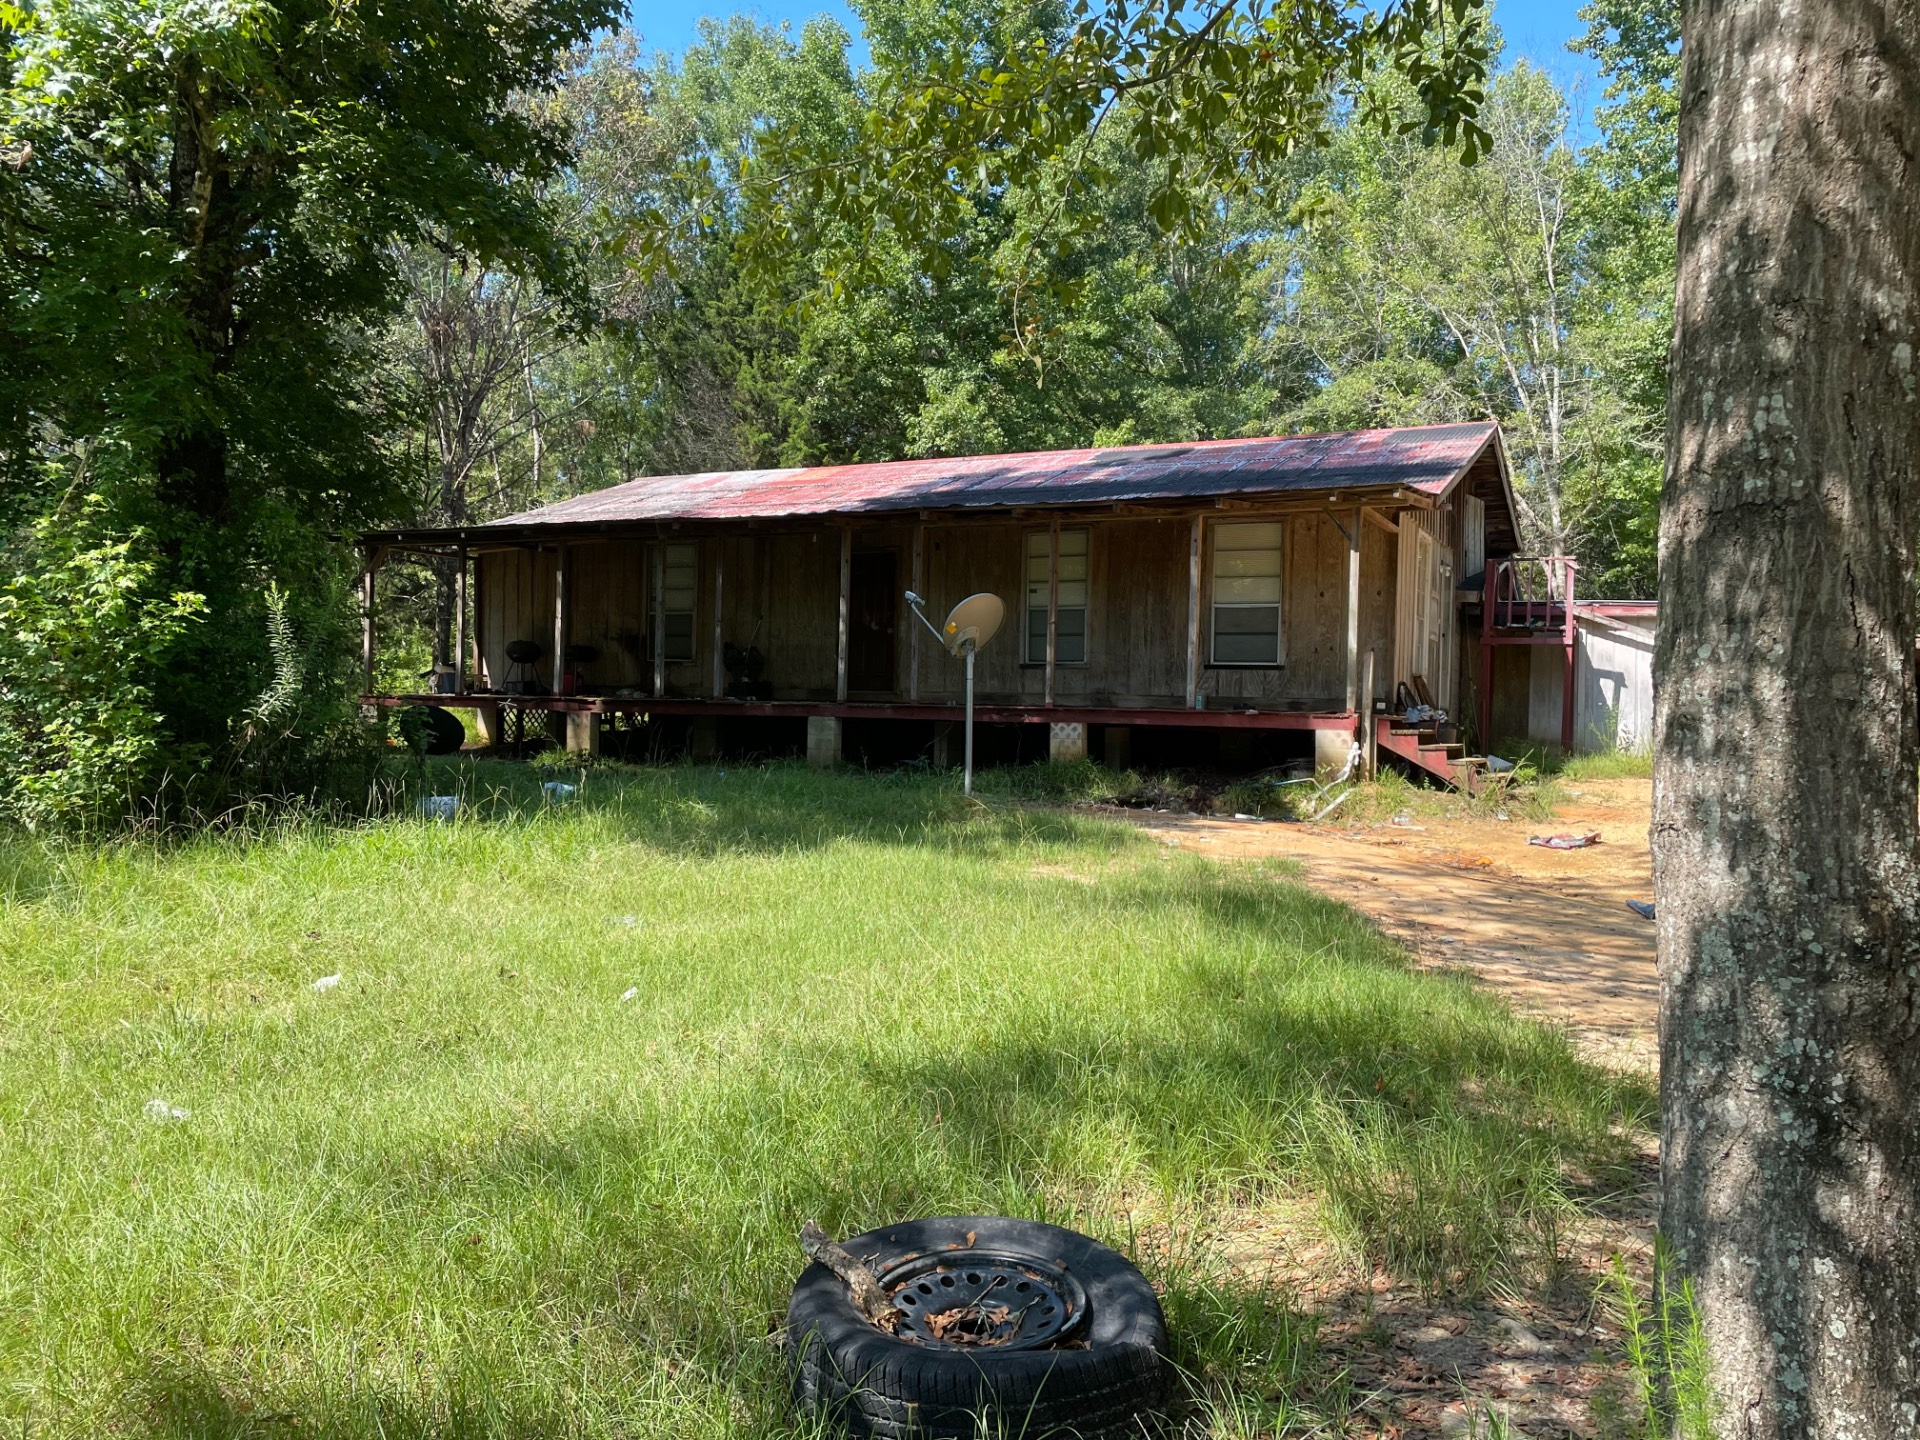 3-Bedroom House In Thomasville